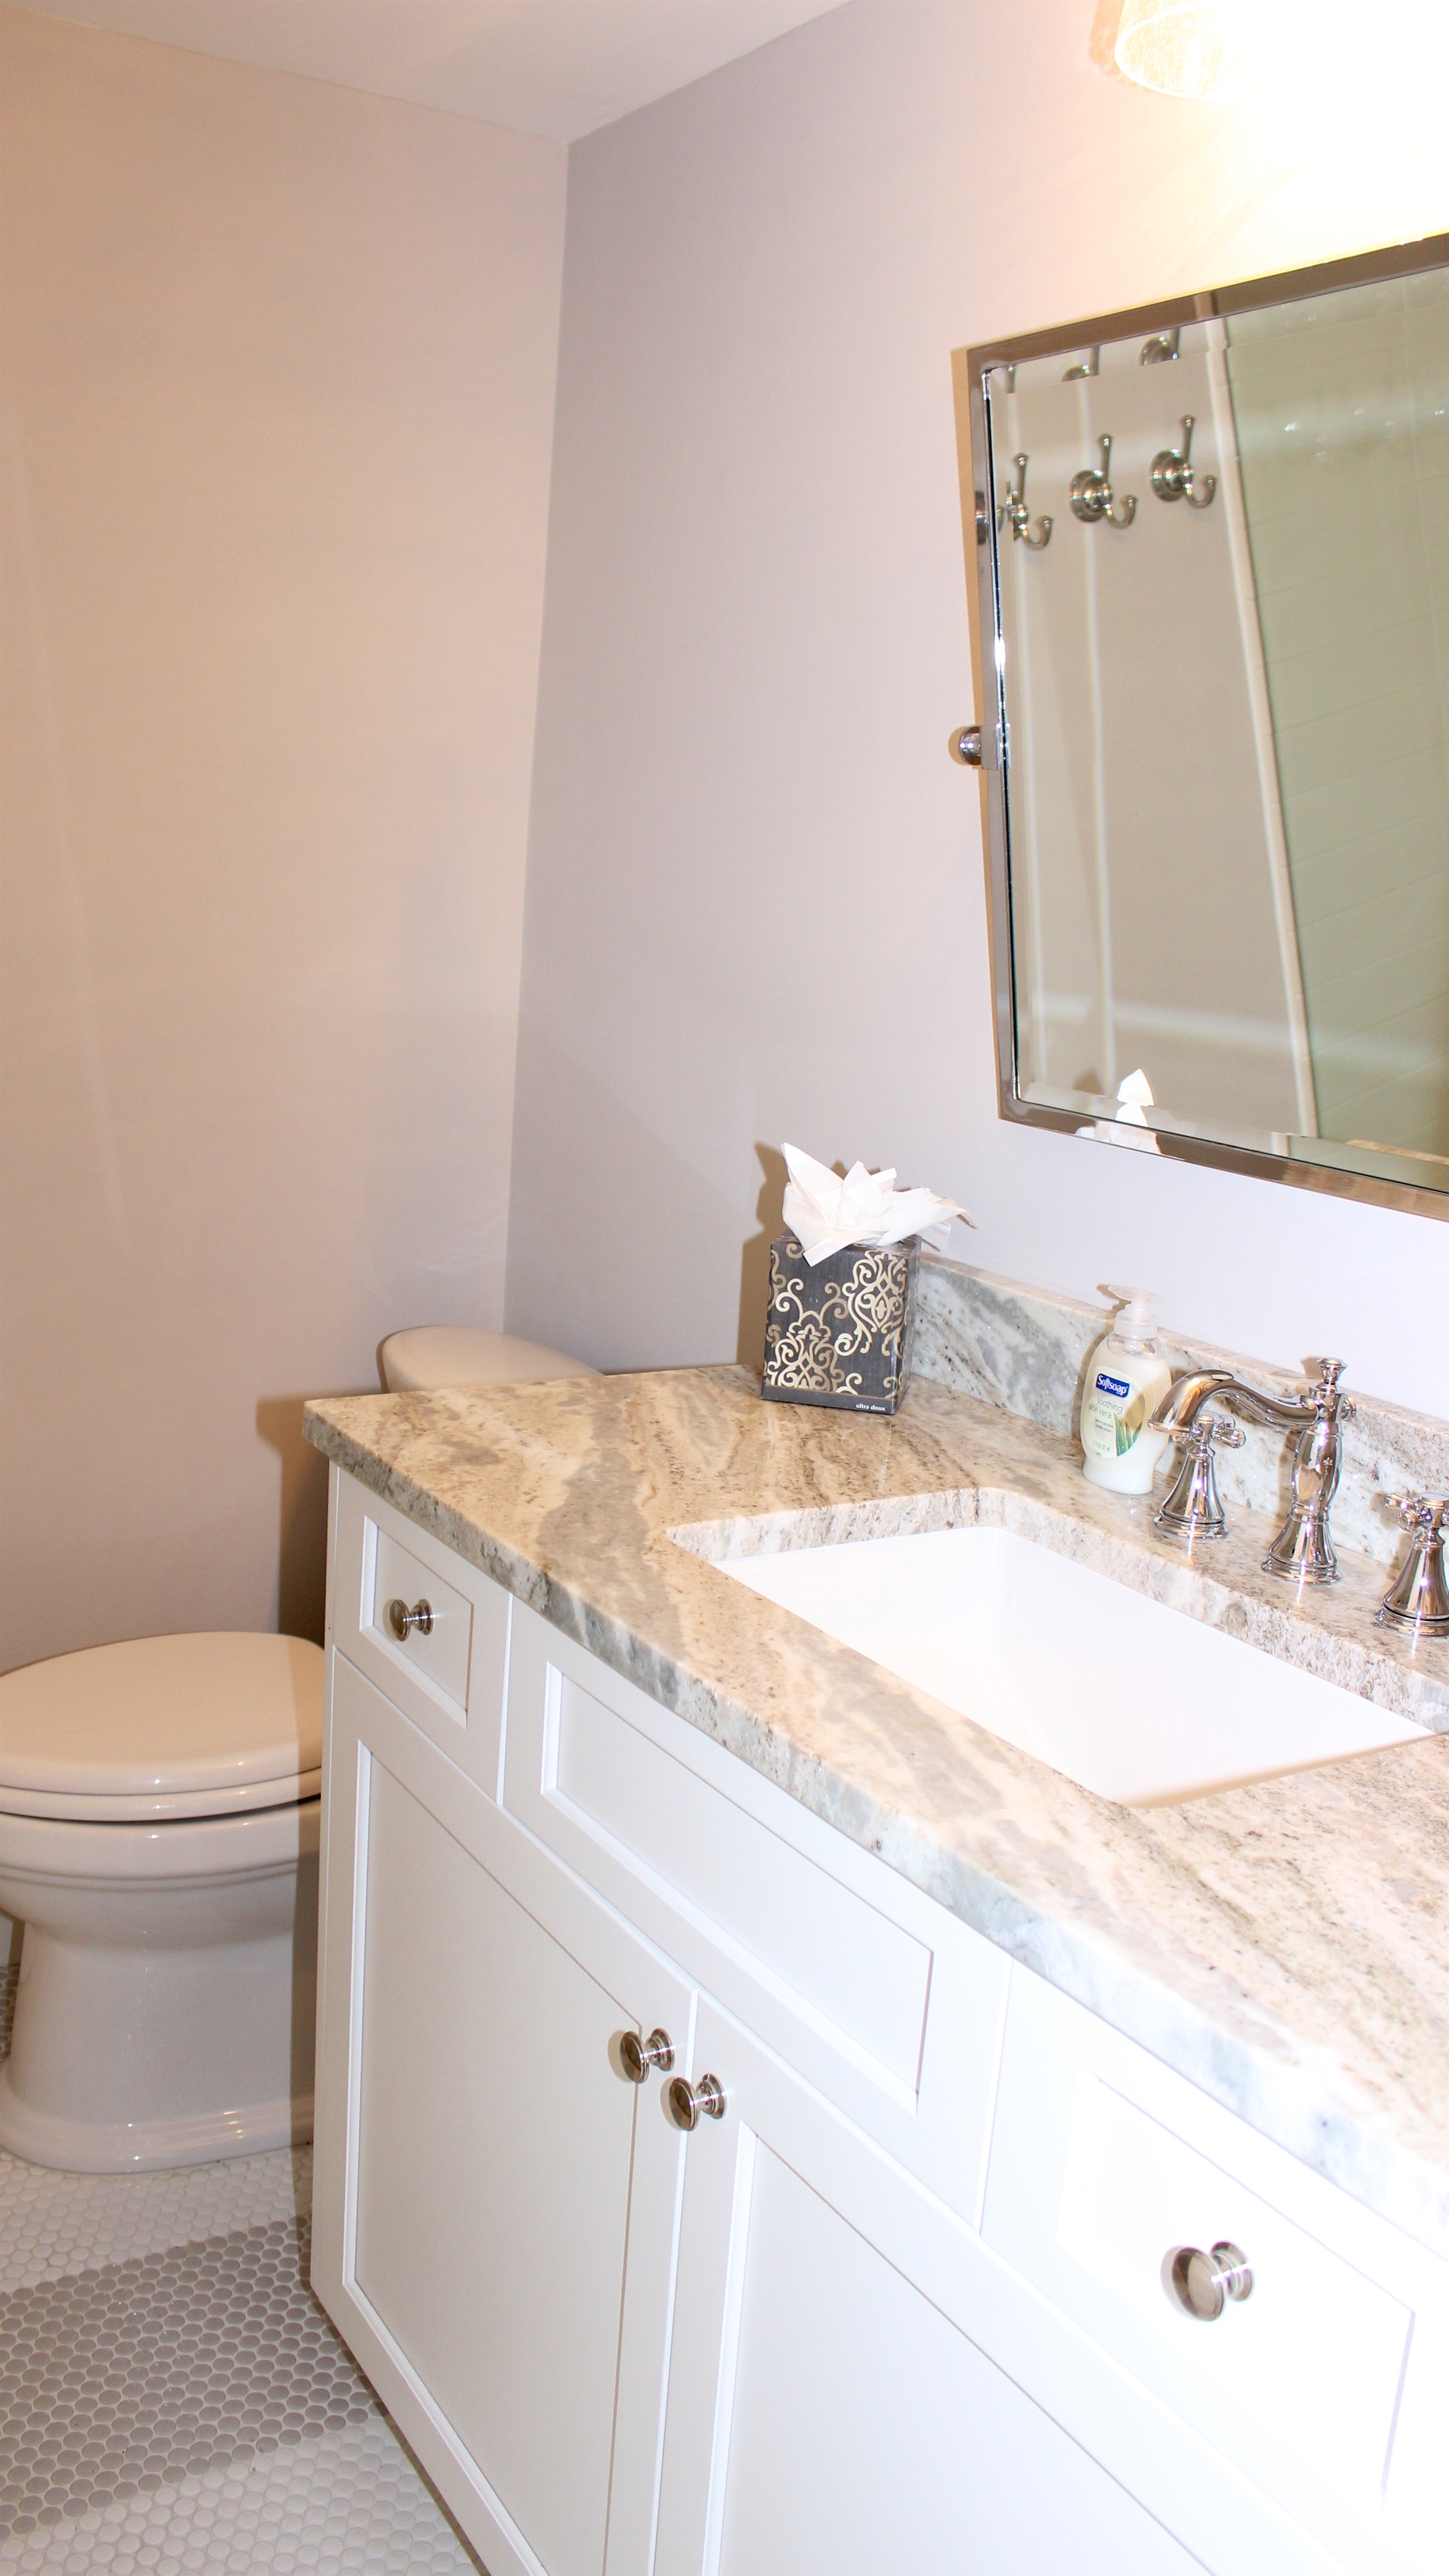 The hall bath has been beautifully updated. Features include a granite counter and tile floor.